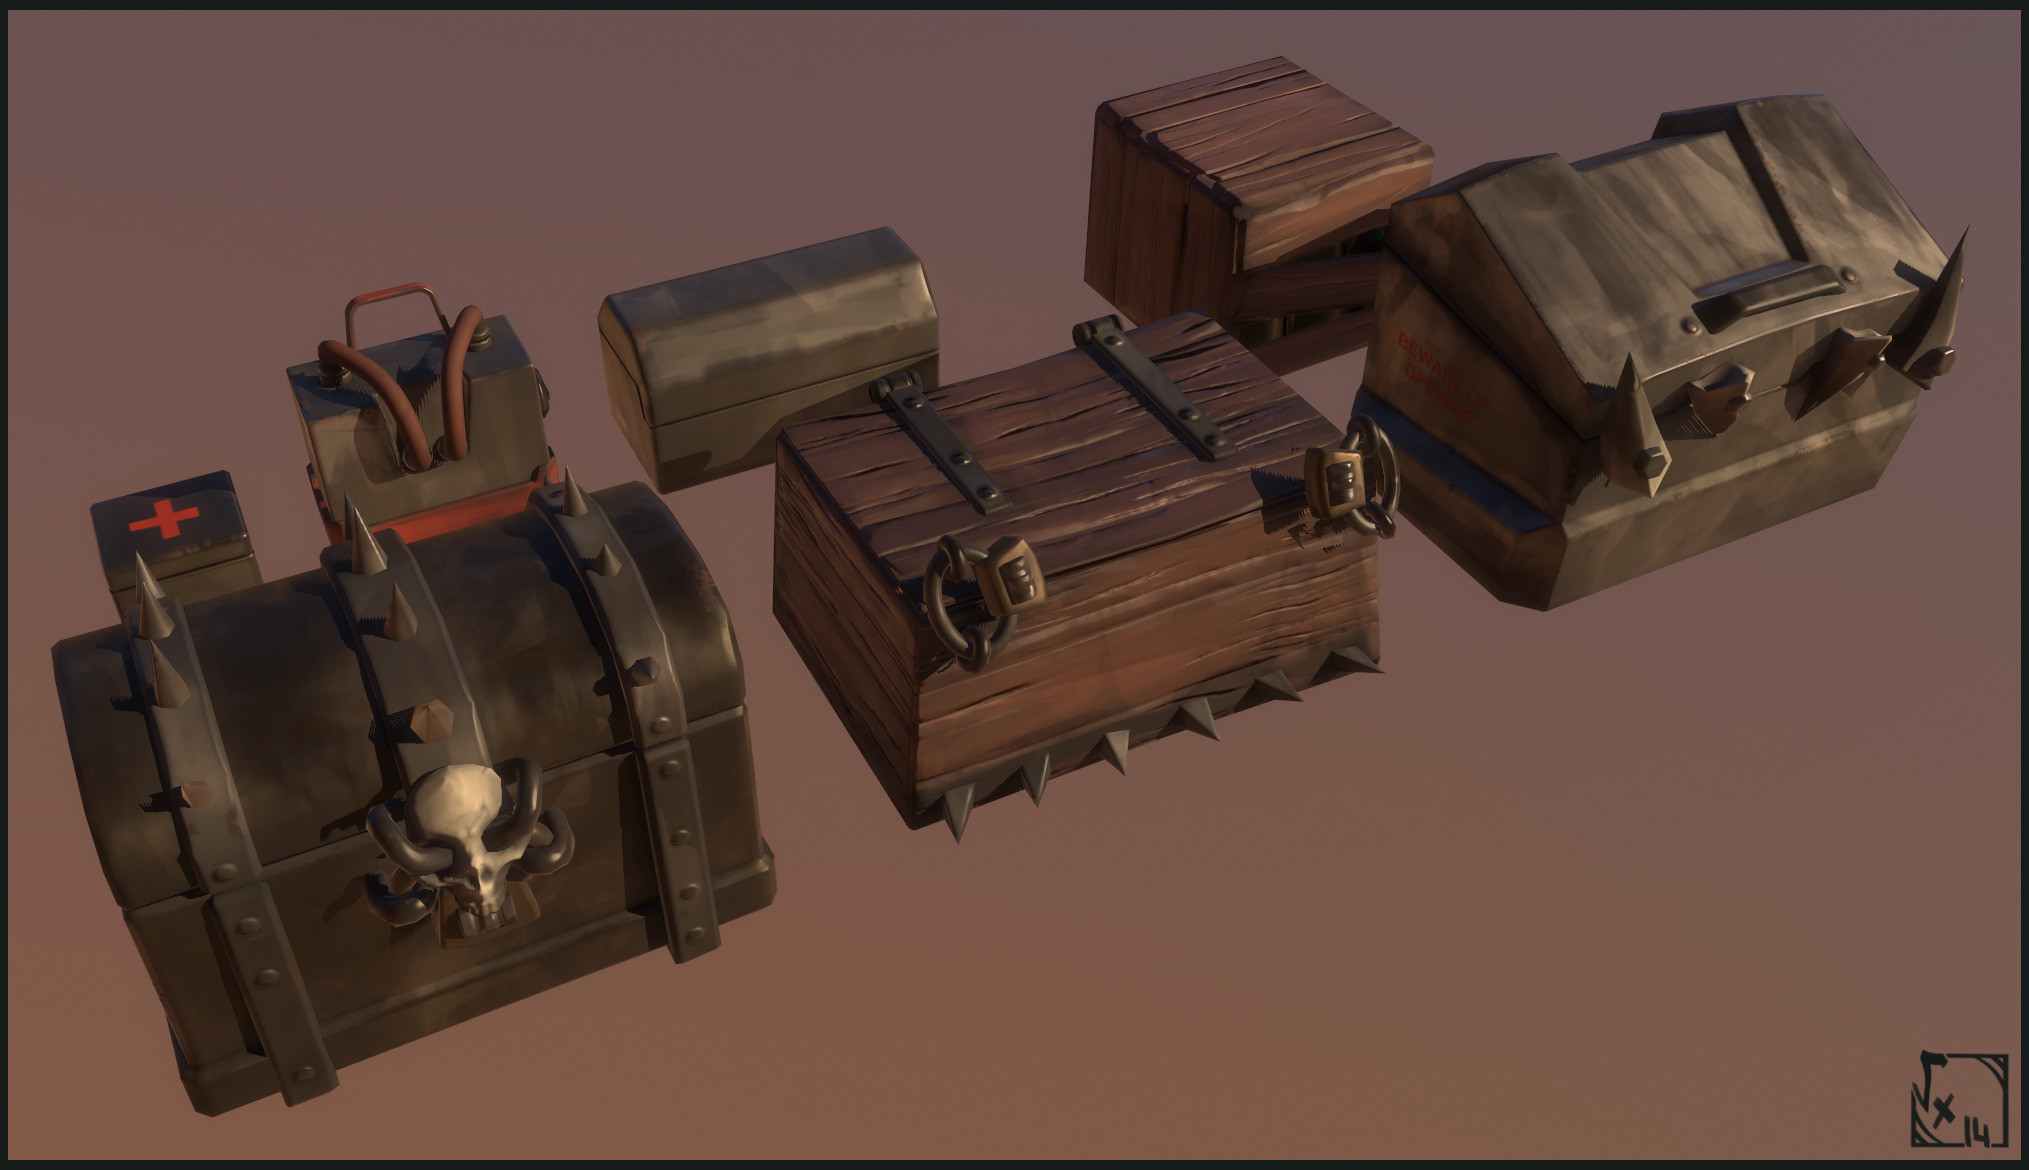 Crates - Crates and barrels will always be part of most game's environments =P